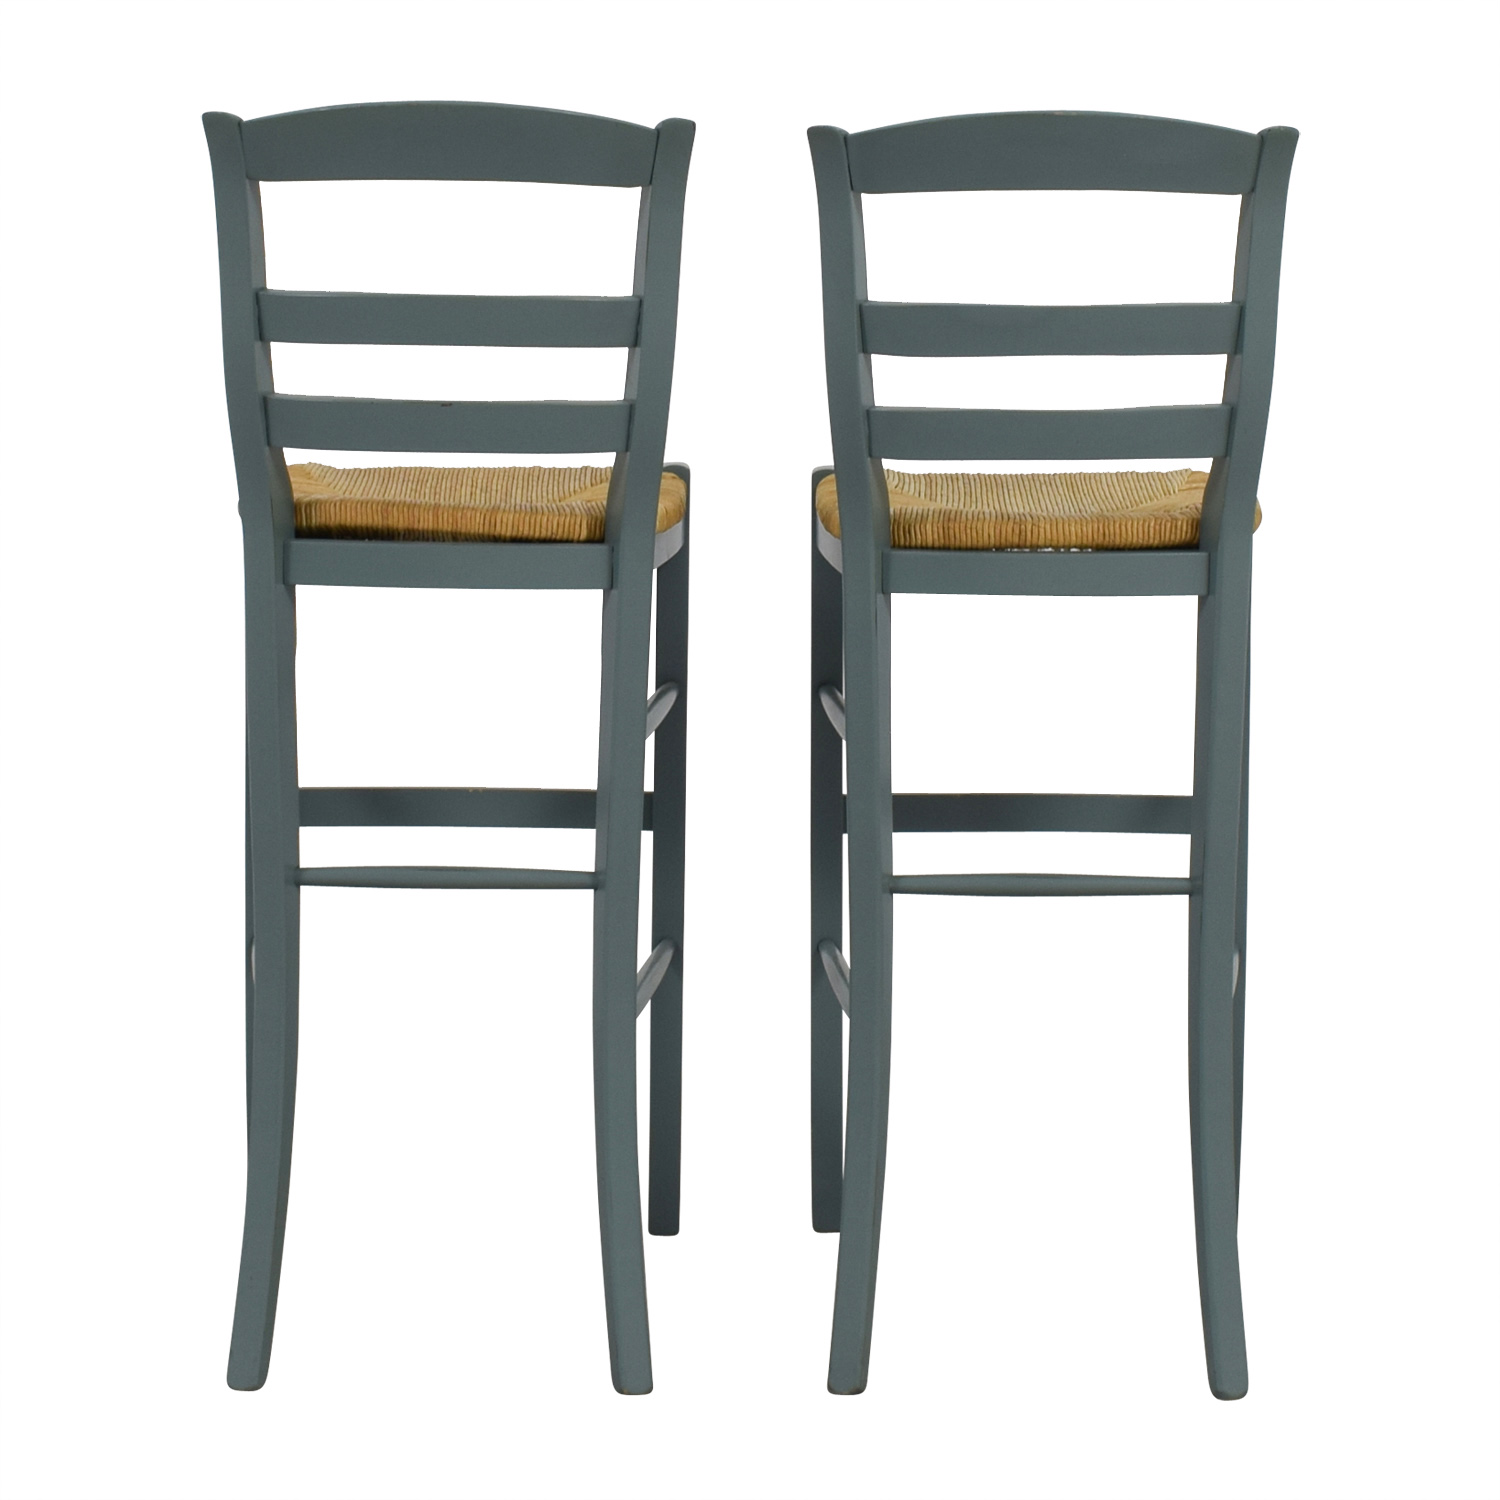 Marvelous 77 Off Pottery Barn Pottery Barn Isabella Wood Bar Stools Chairs Machost Co Dining Chair Design Ideas Machostcouk